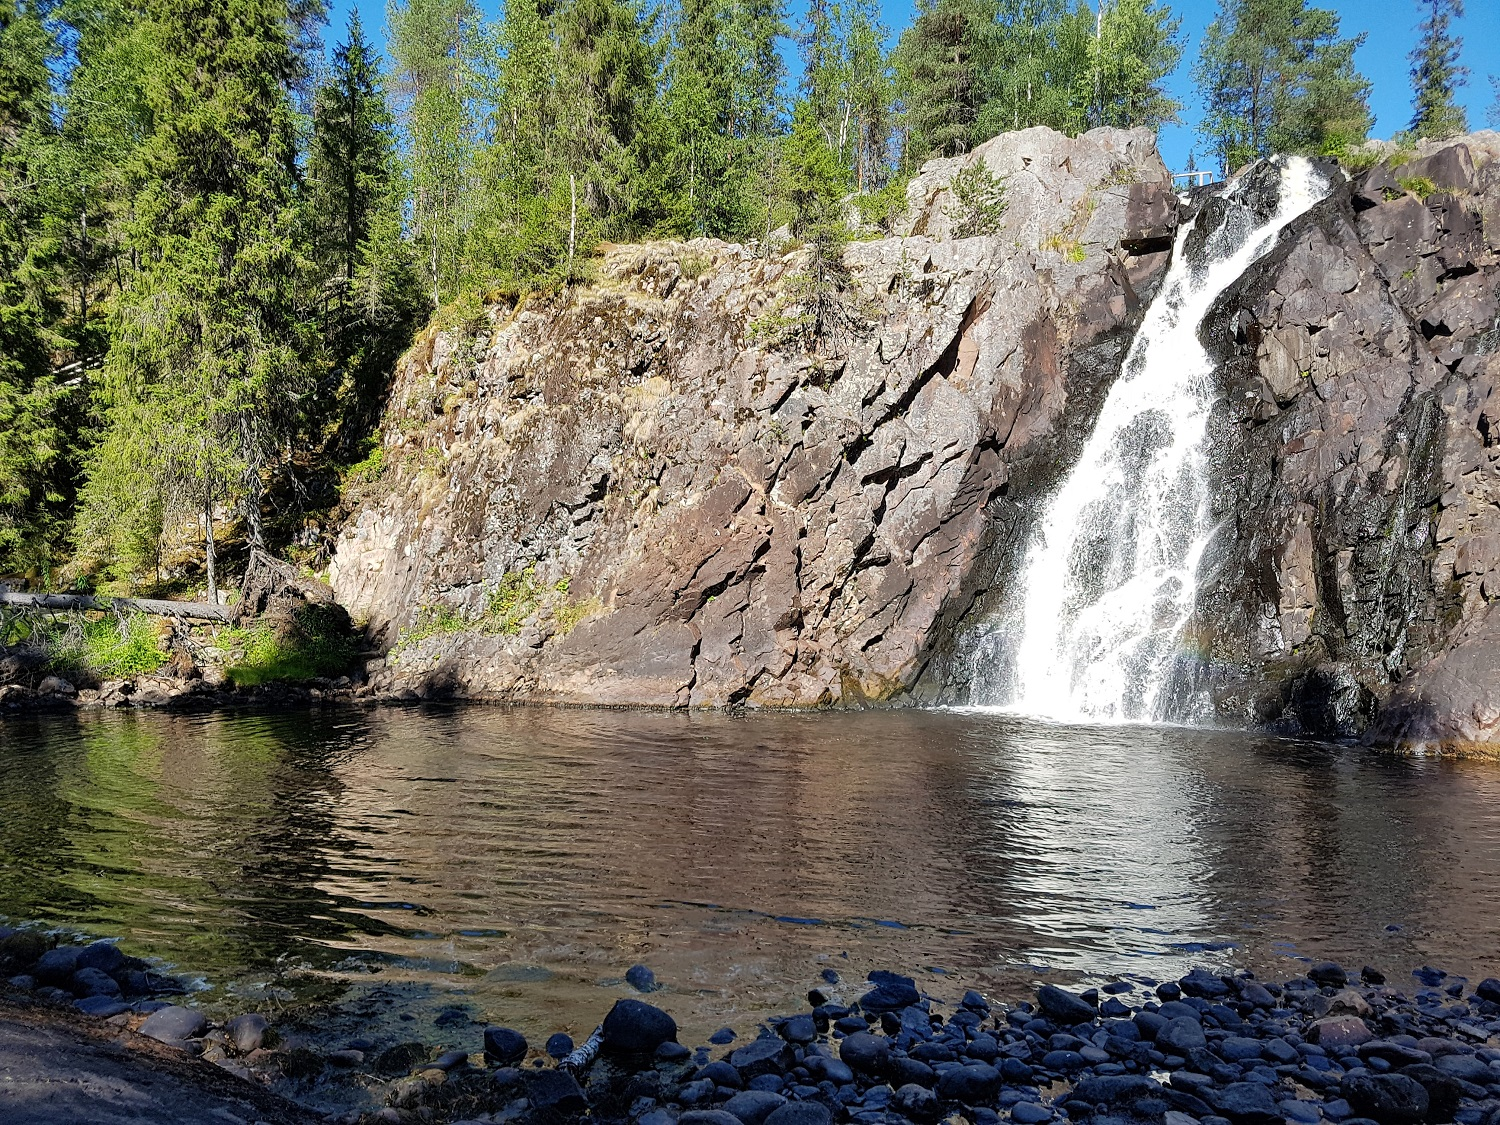 Hepokongas waterval in Finland